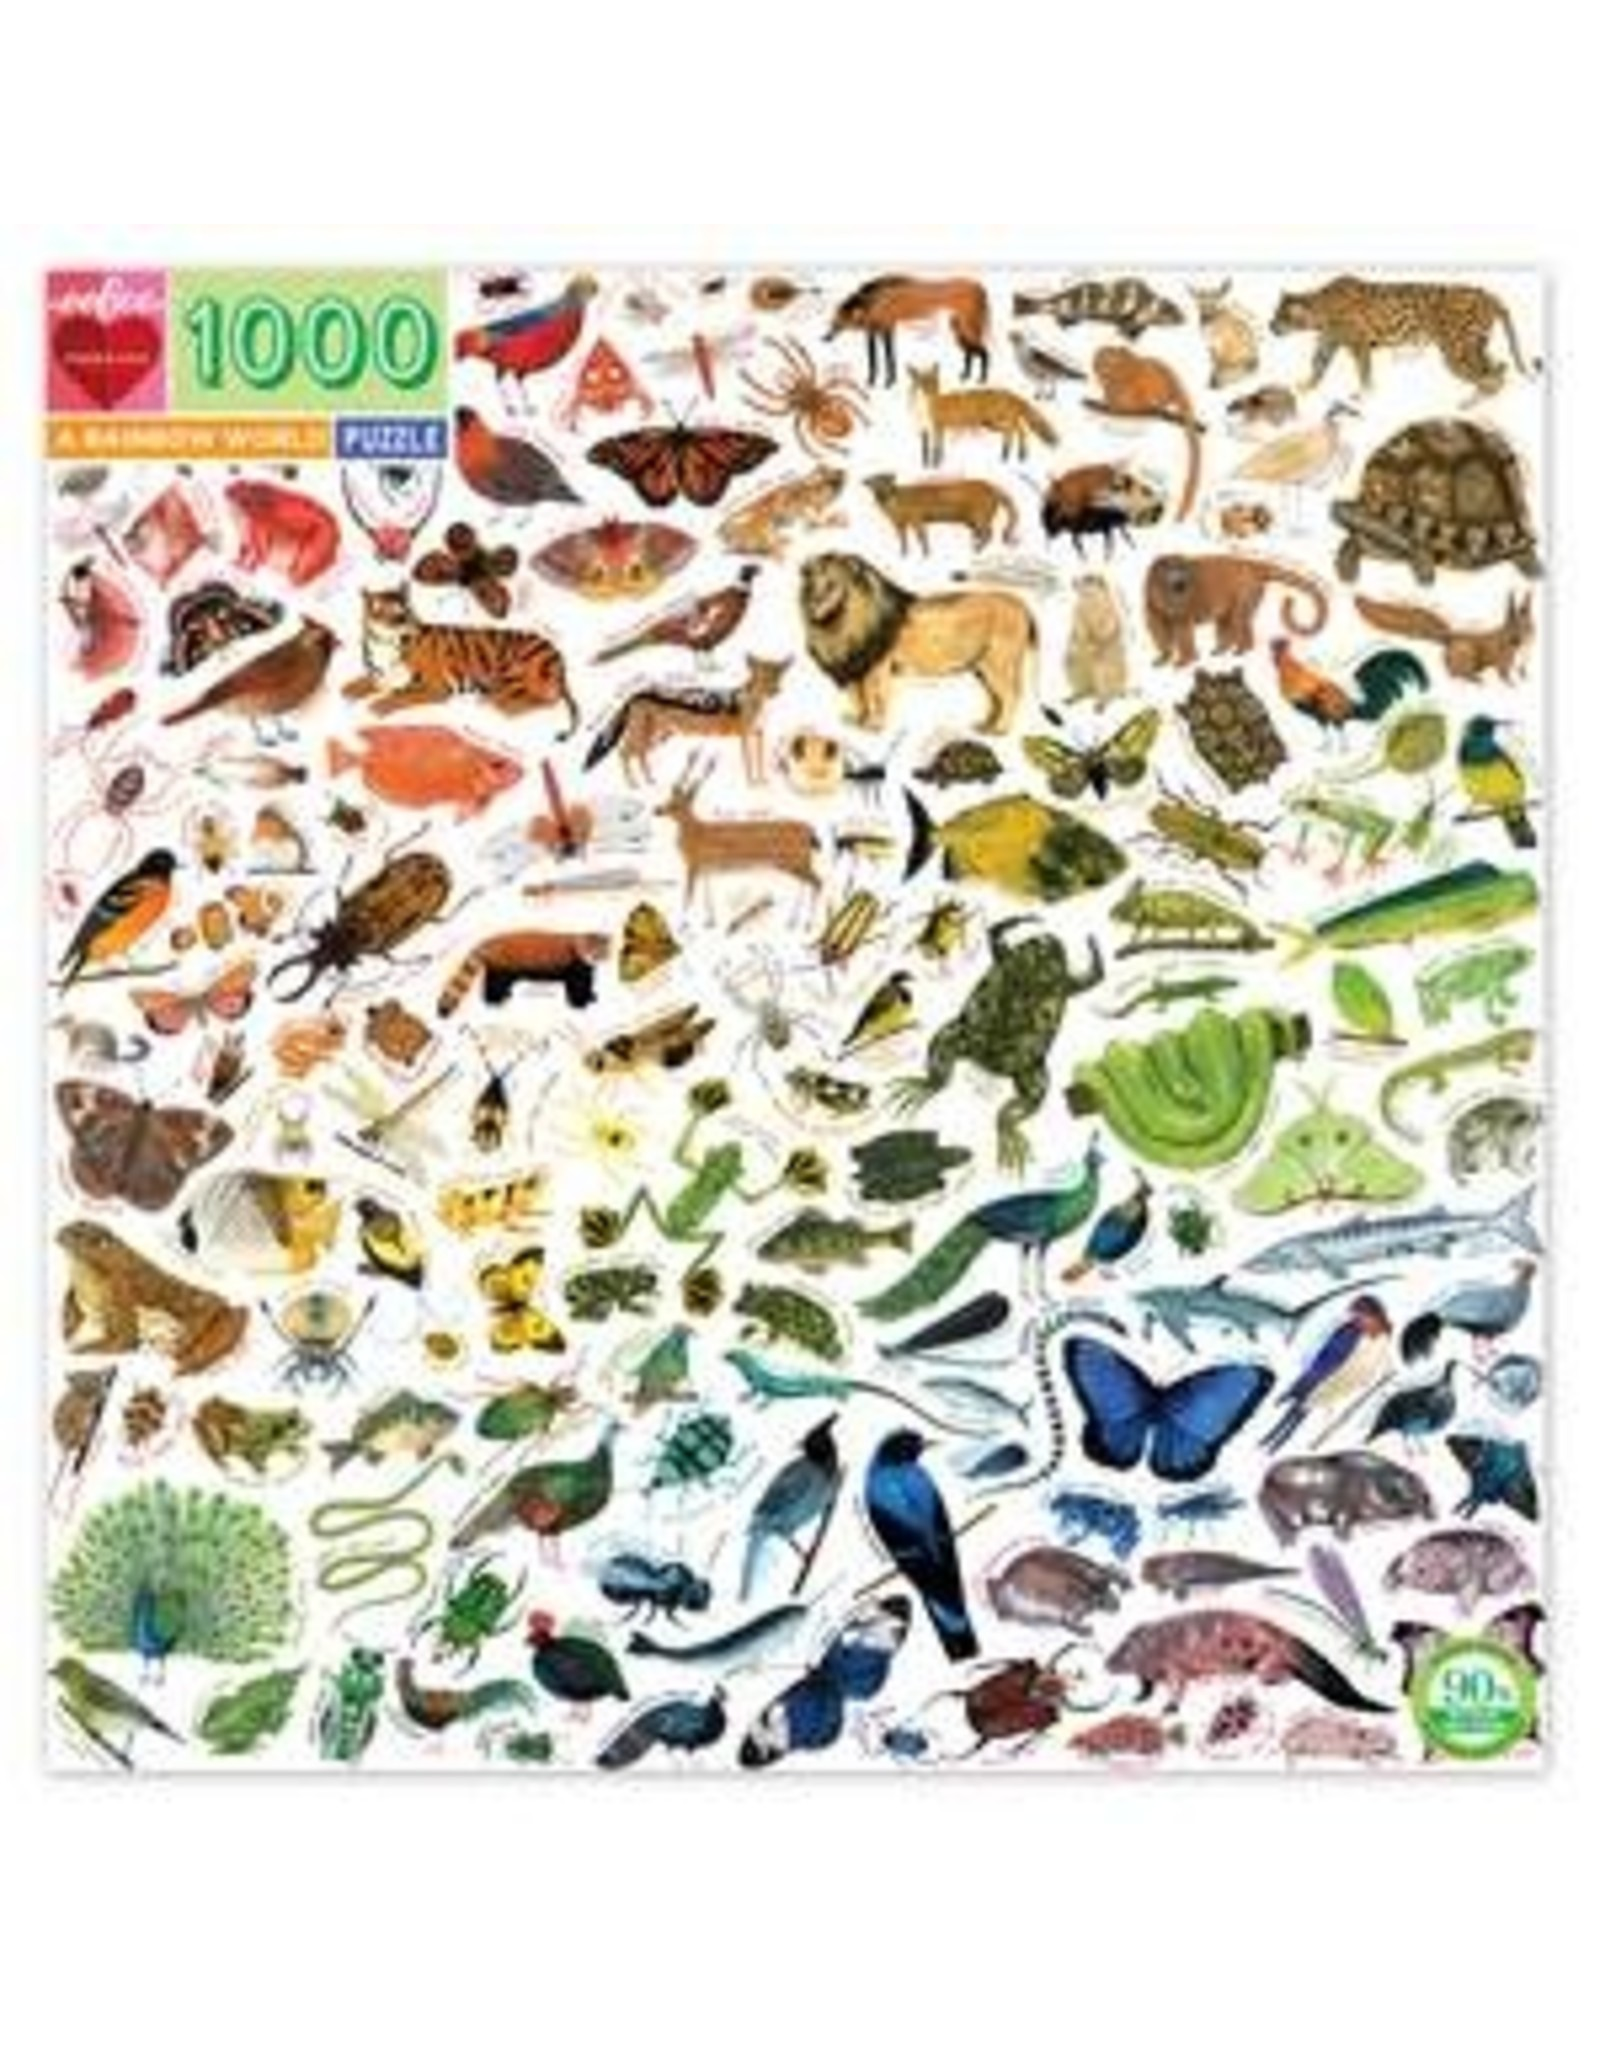 Eeboo 1000 pcs. A Rainbow World Puzzle